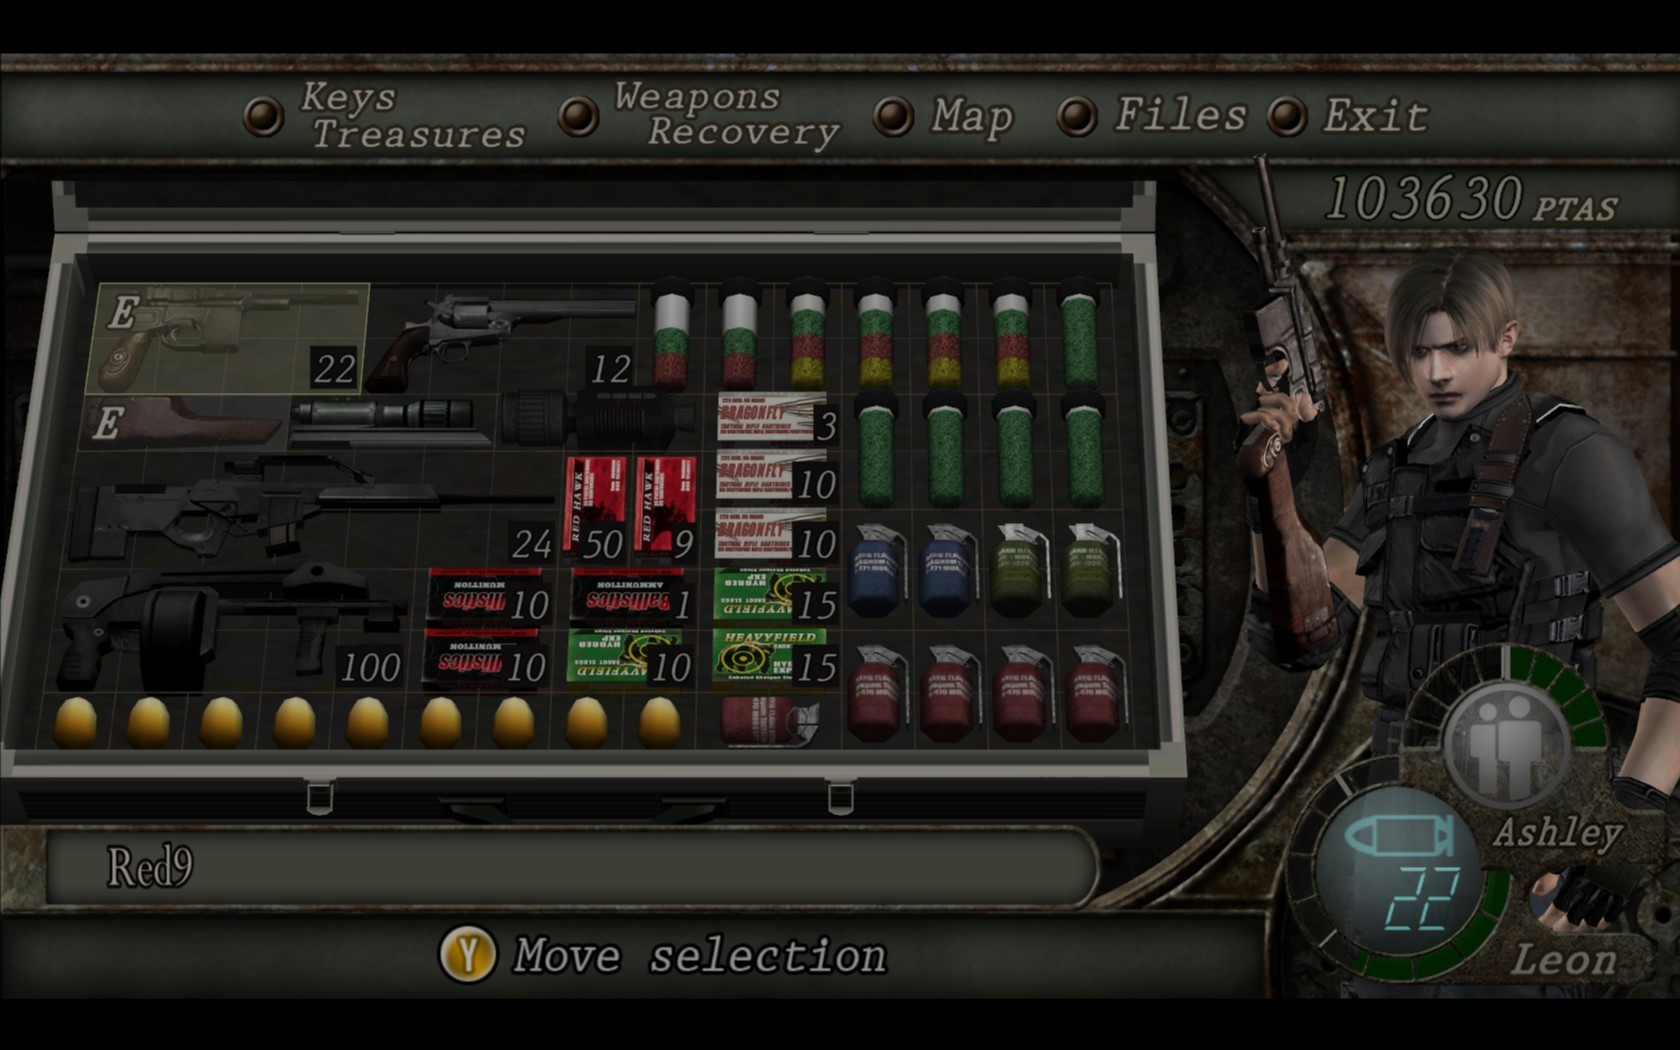 Assets - RELEASE 7 8 0 - Inventory and Weapon Modding (ICWM) | Page